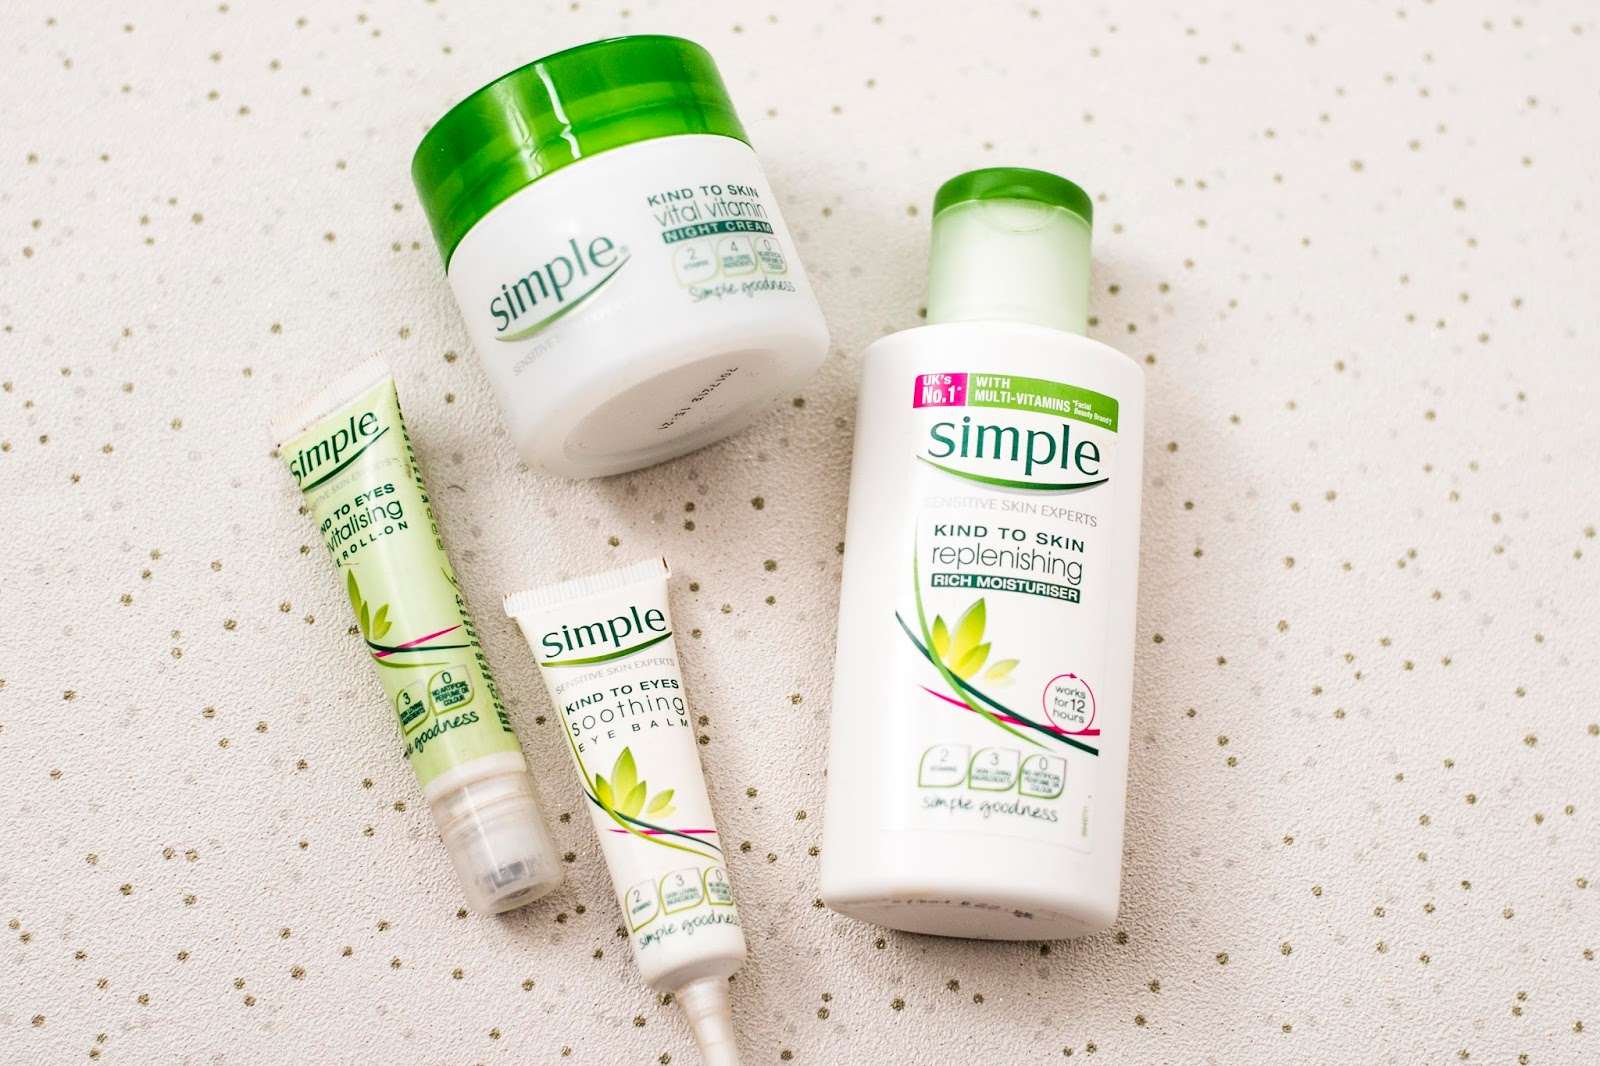 Simple Skincare Products